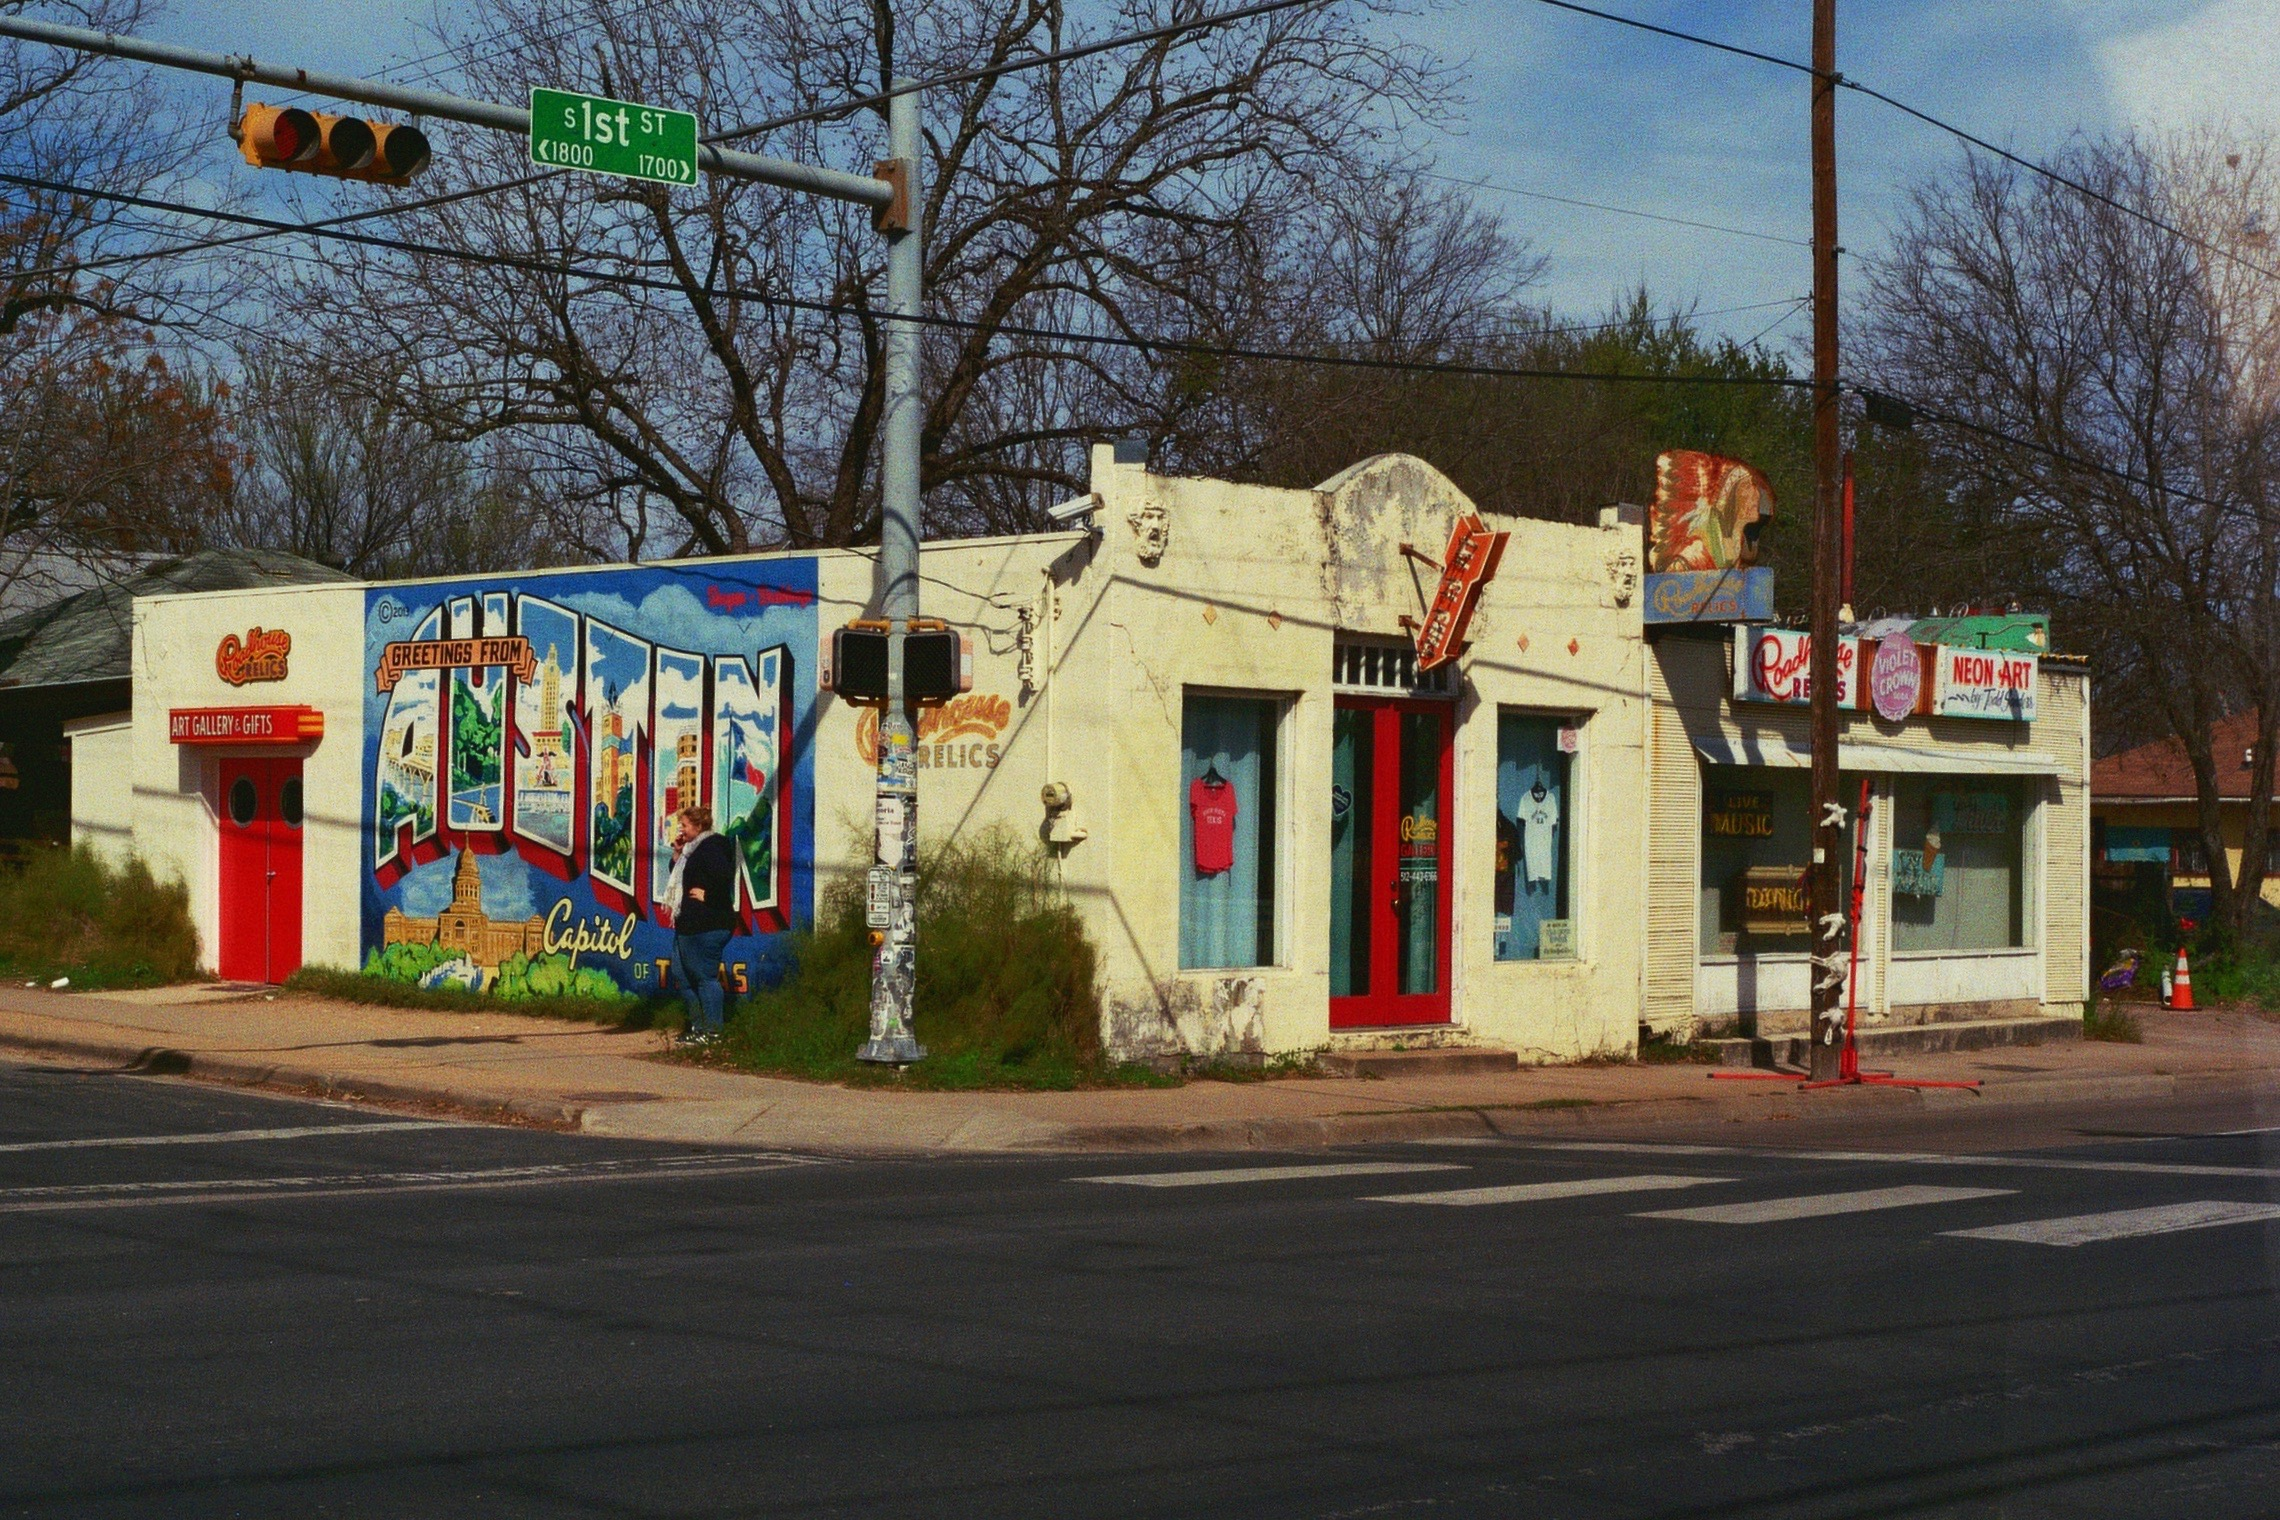 A classic spot for taking photos to prove you visited Austin.